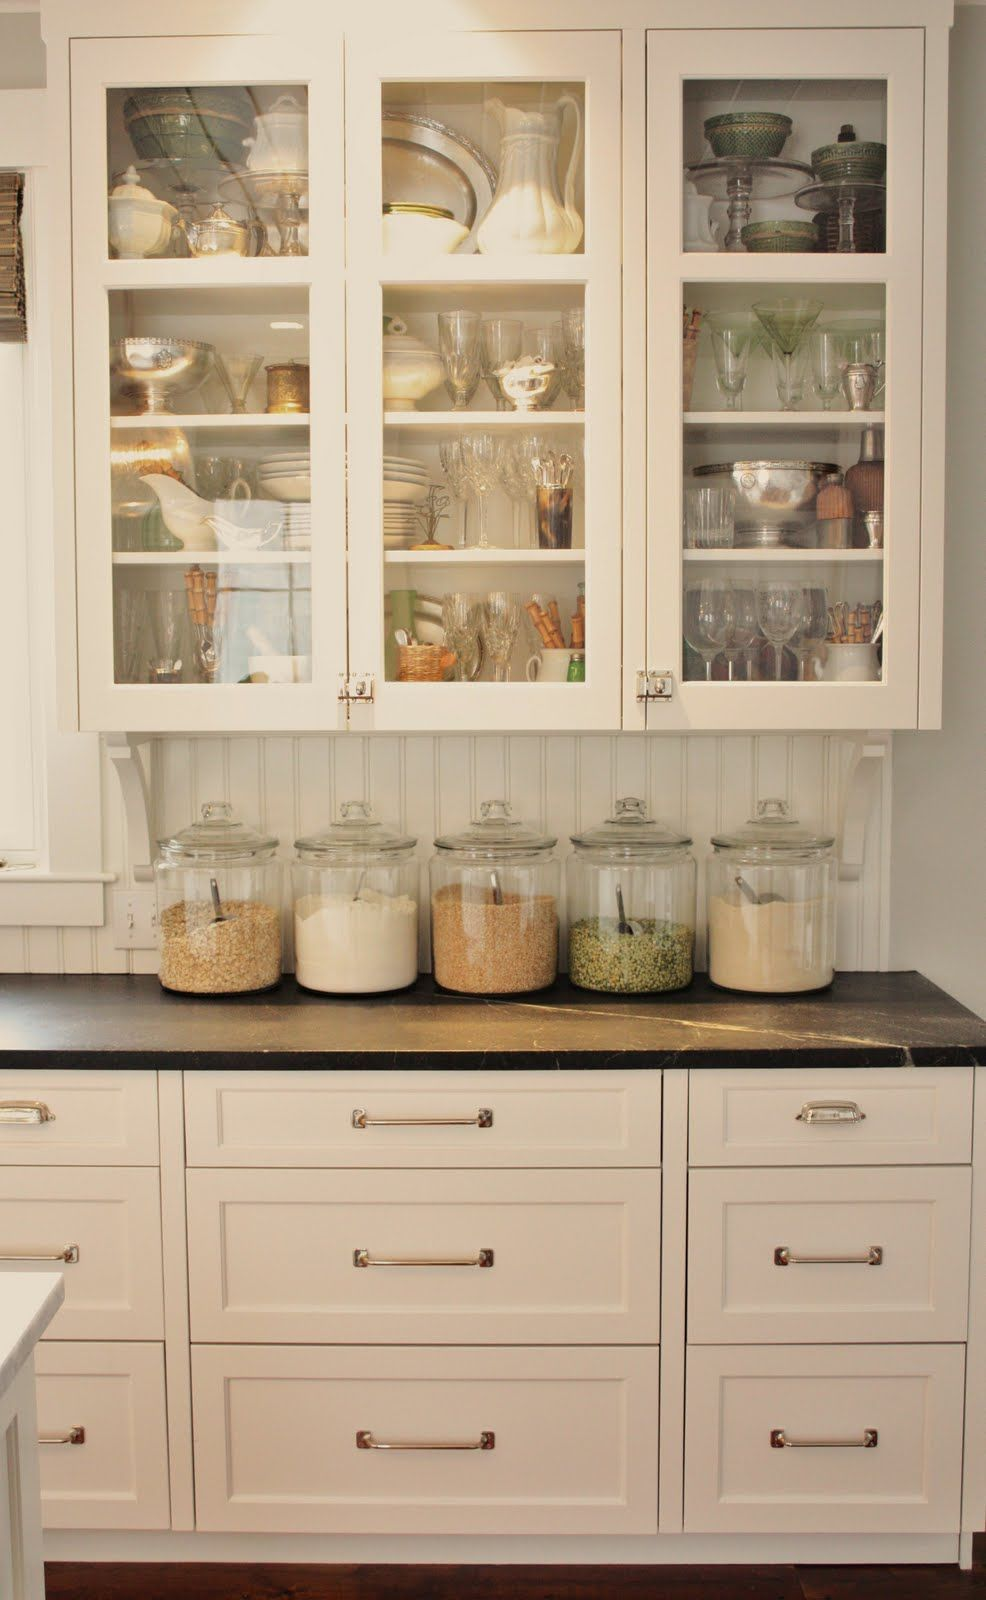 My cabinets.Amazing kitchen design with white shaker glass-front kitchen cabinets painted Benjamin Moore White Dove beadboard backsplash soapstone counter ...  sc 1 st  Pinterest & I love the use of wainscoting as a back splash in the kitchen. I ...